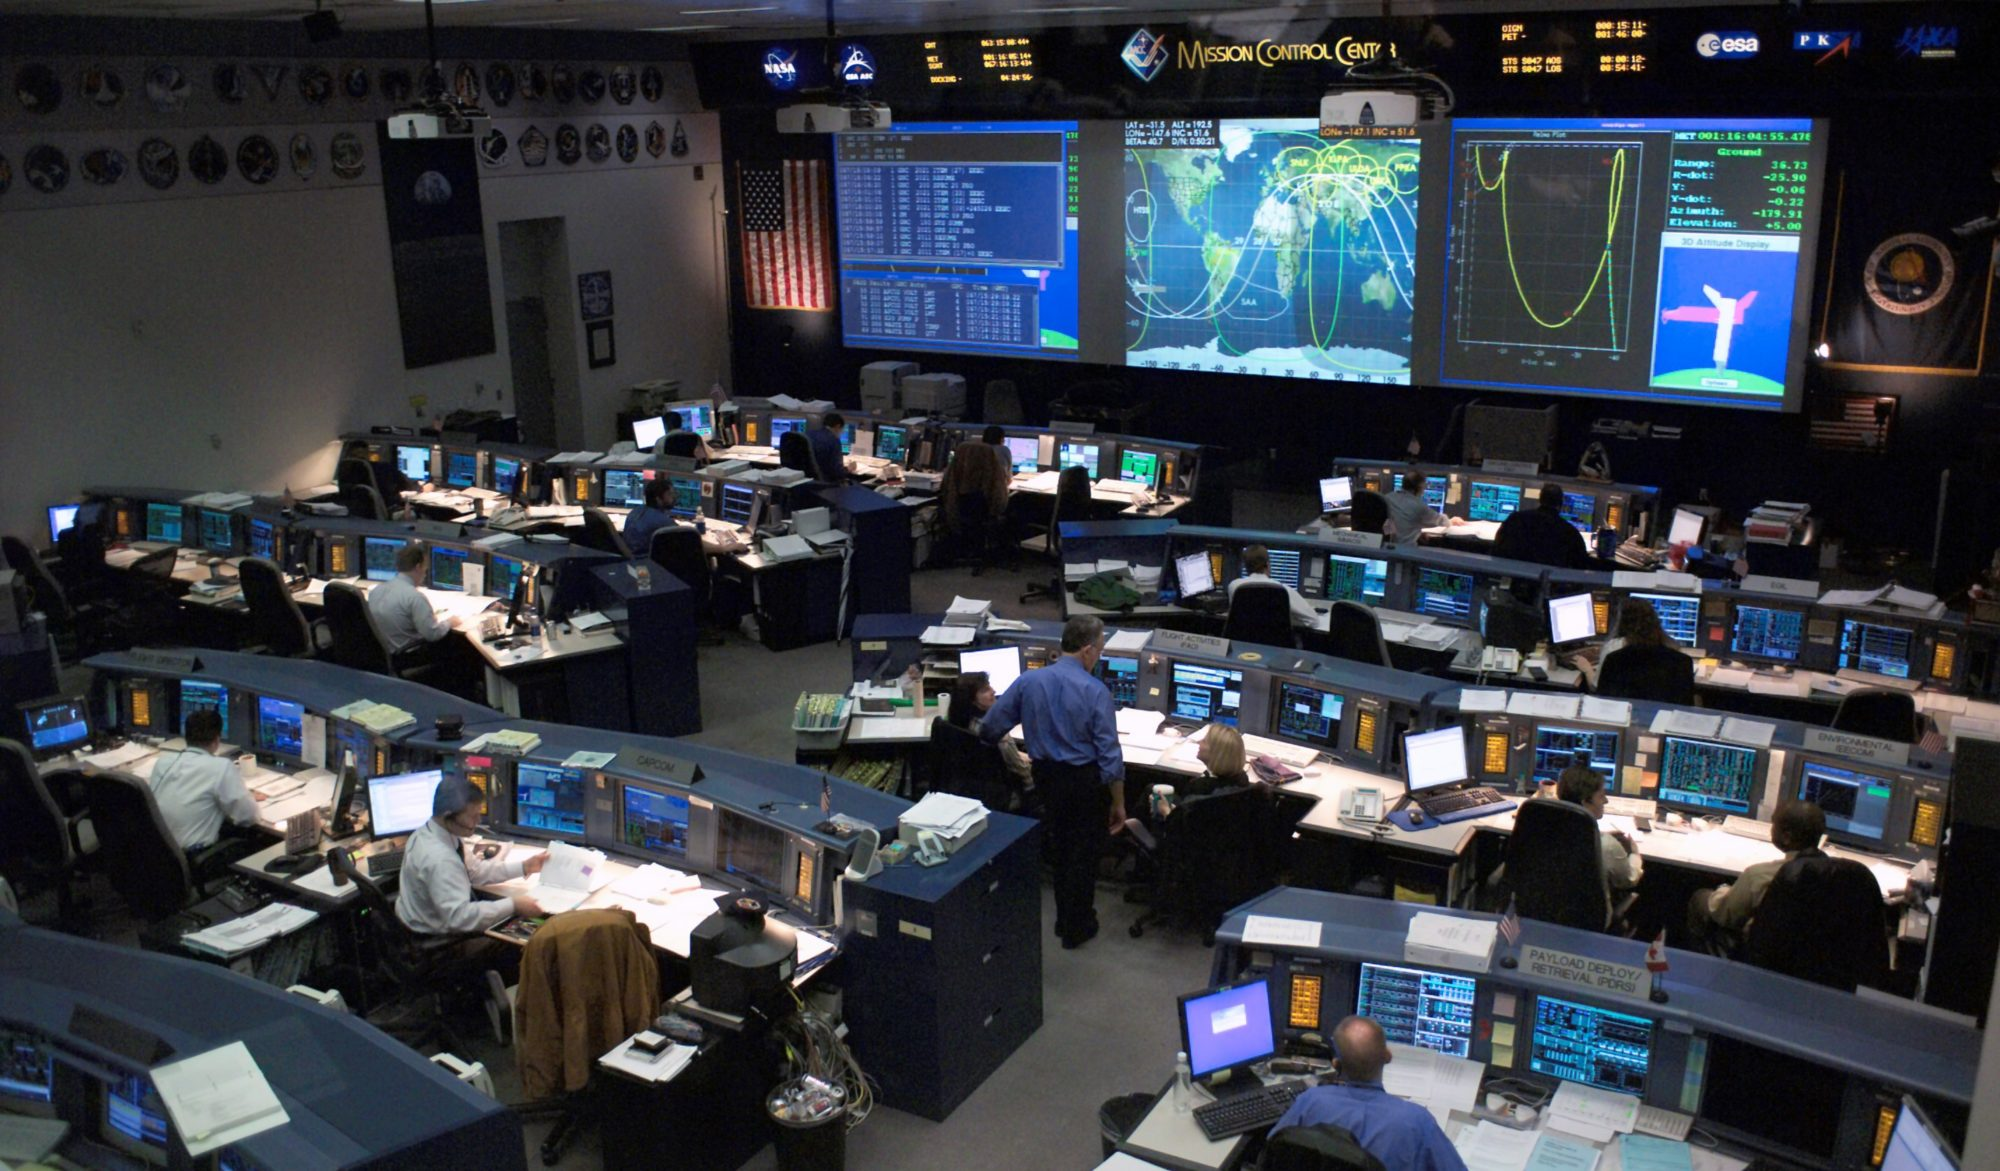 Leadership from Mission Control | Atlas Executive